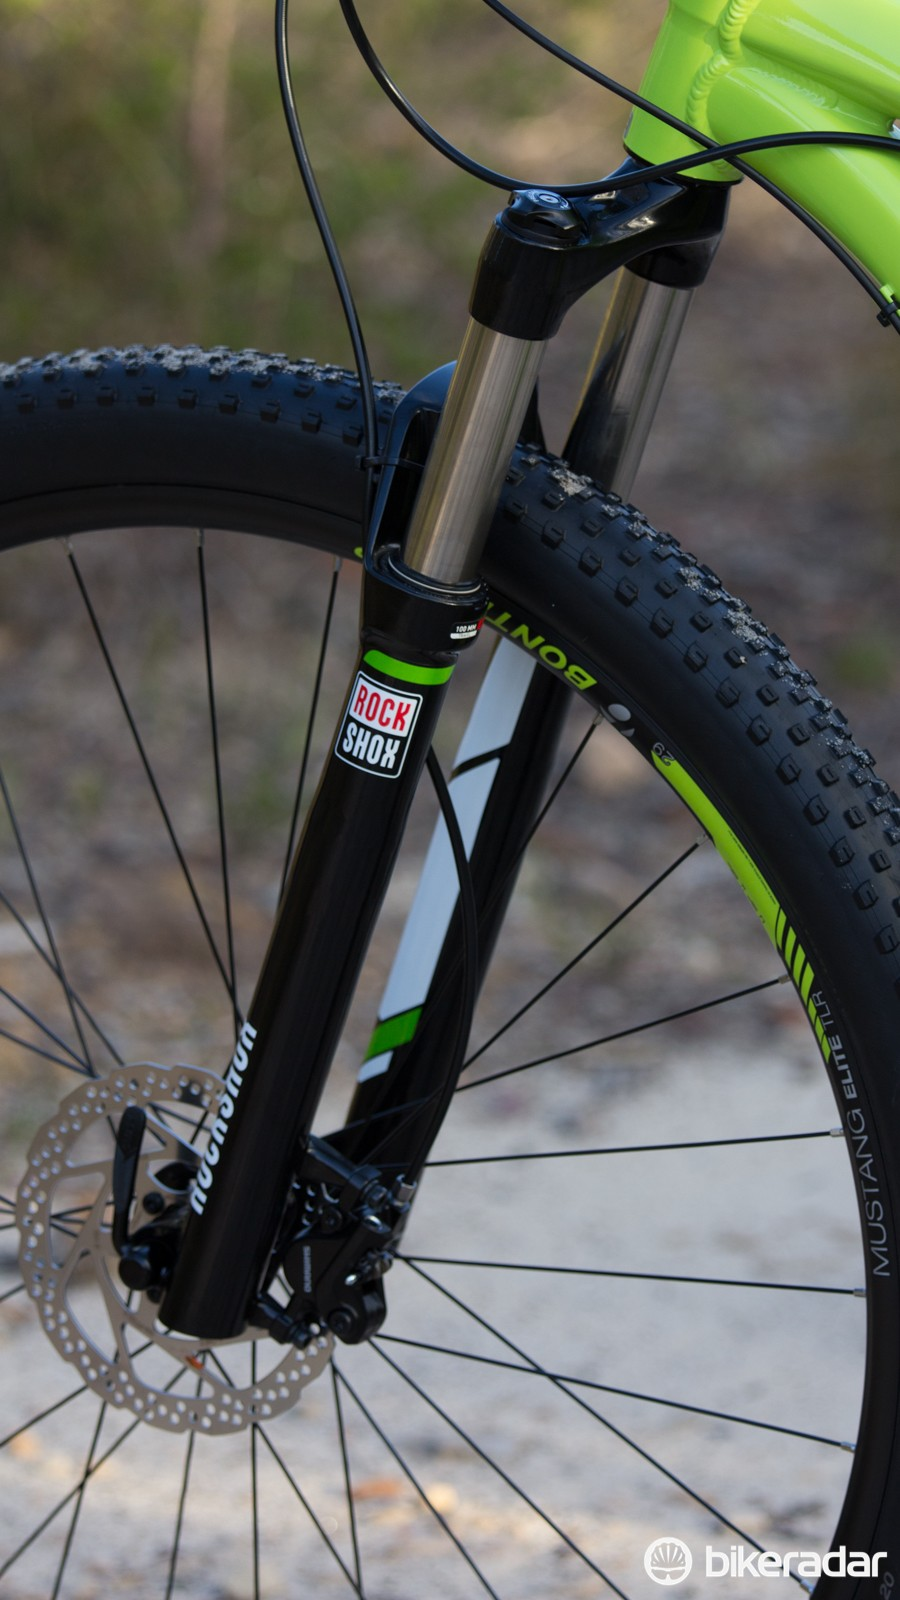 A RockShox XC32 fork sits out front. While there is some flex when pushed hard, the fork works well in most conditons